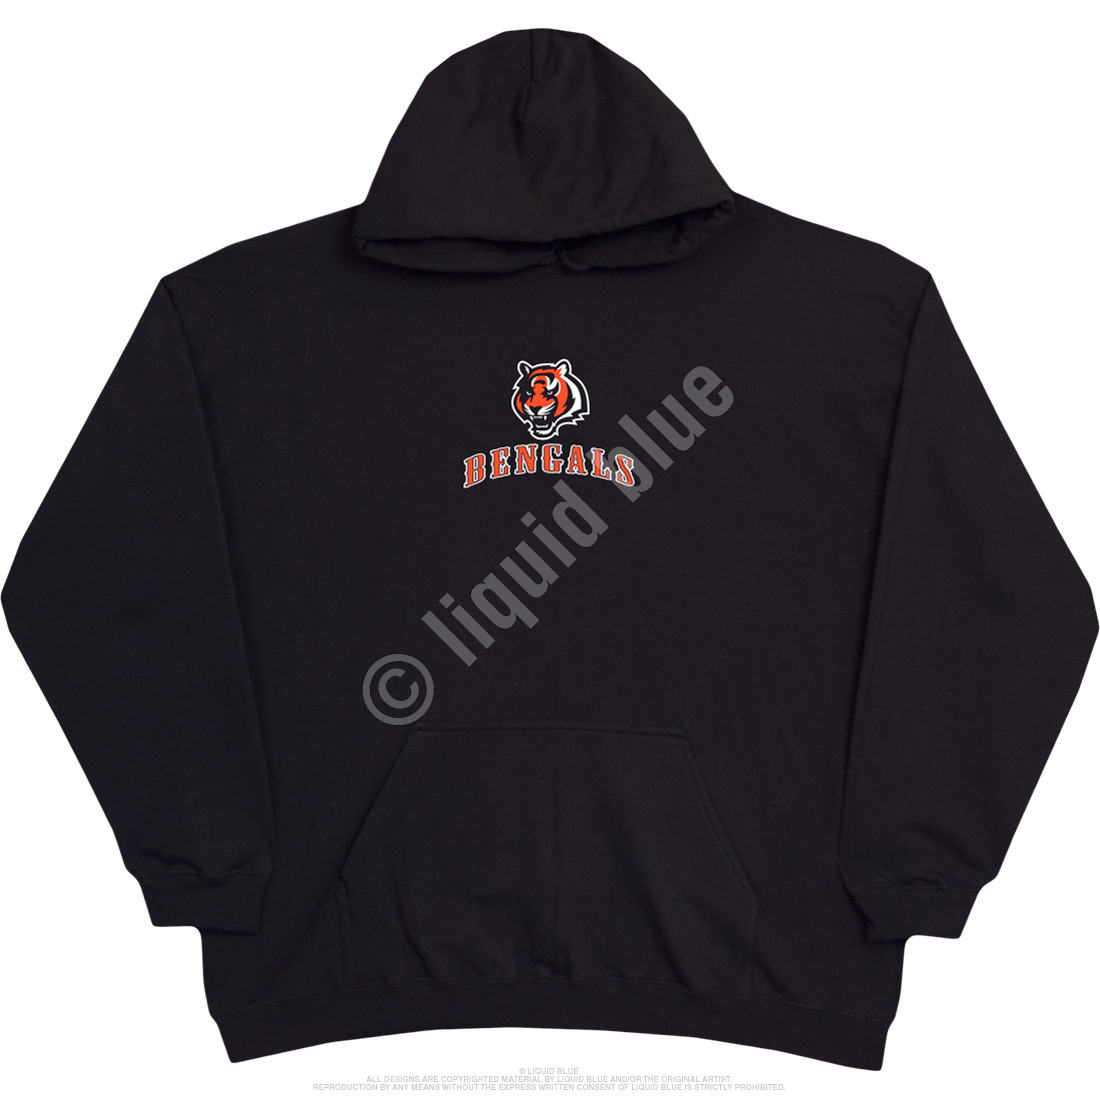 Cincinnati Bengals Running Back Black Hoodie